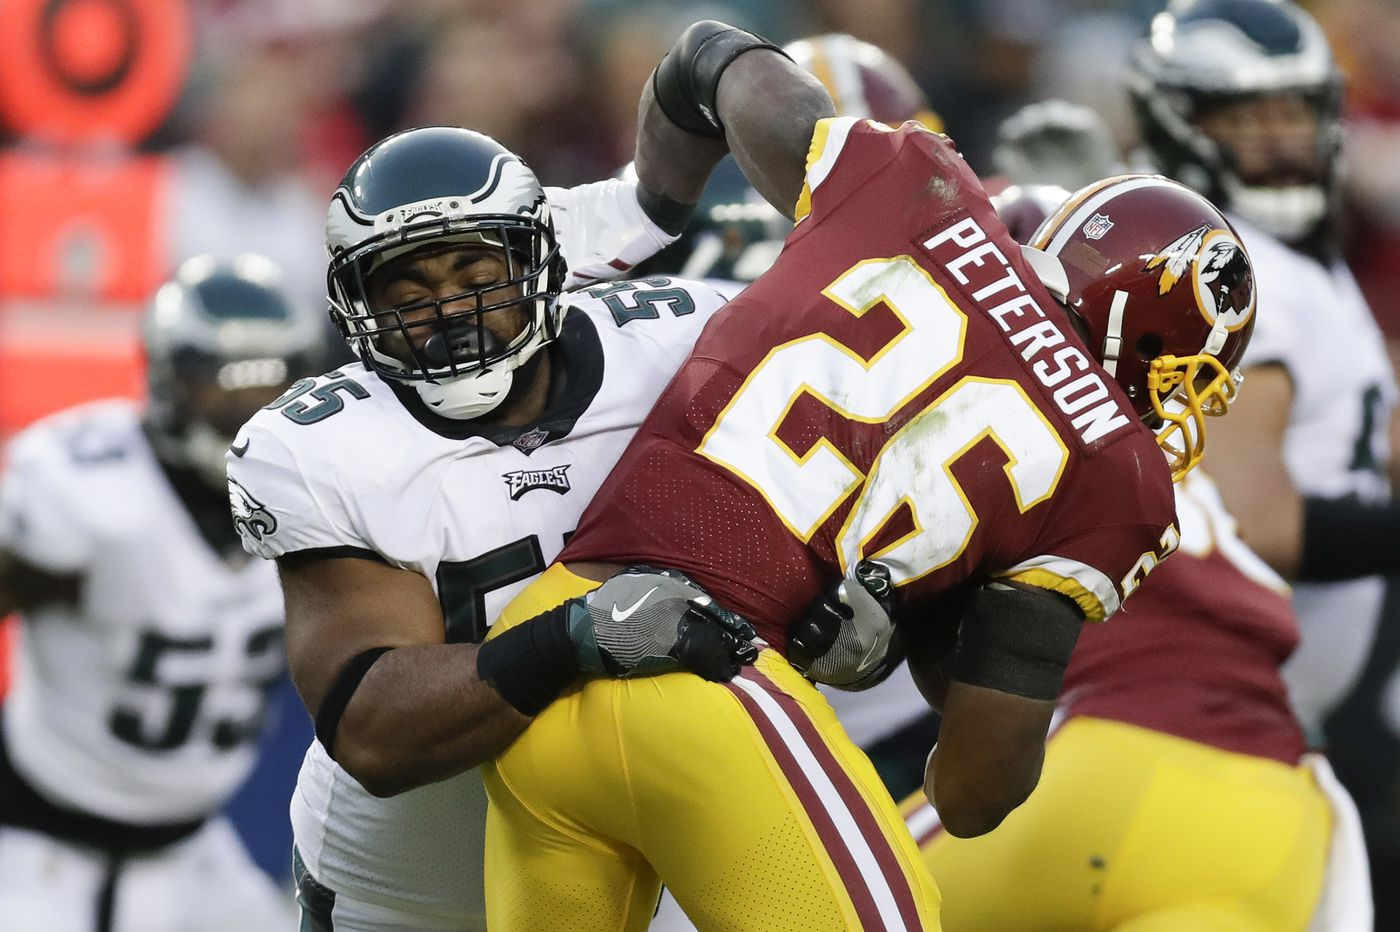 Eagles defense ready for an Adrian Peterson who 'still can explode' | Early Birds